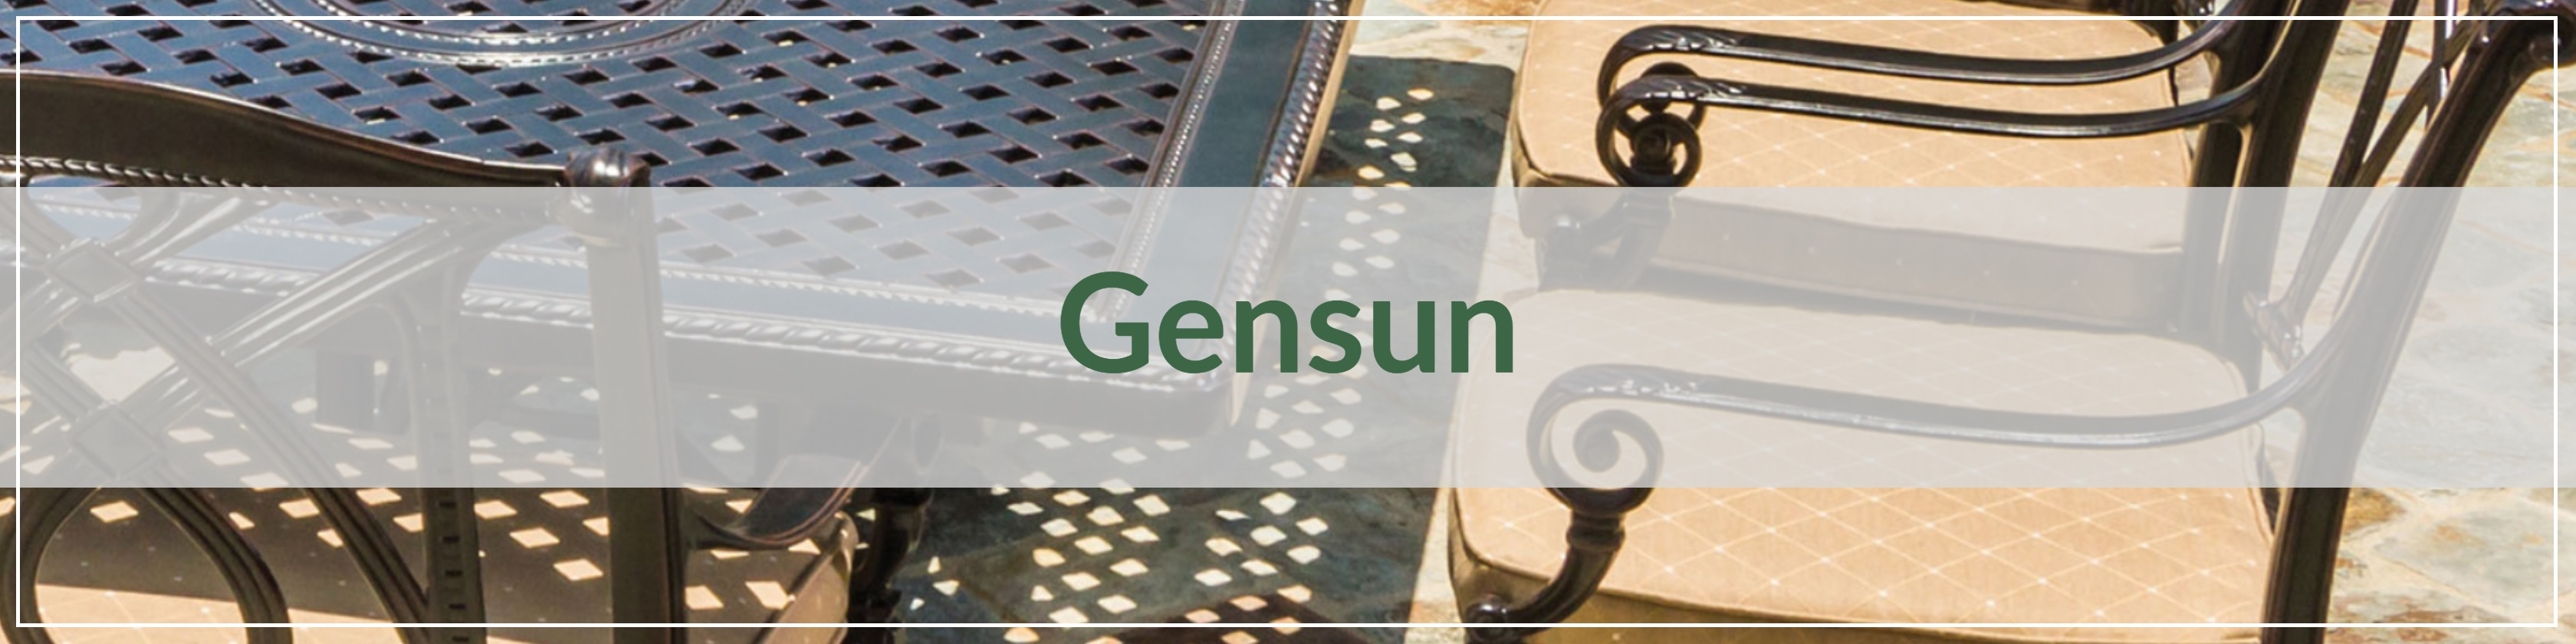 Gensun Cast Aluminum Outdoor Dining